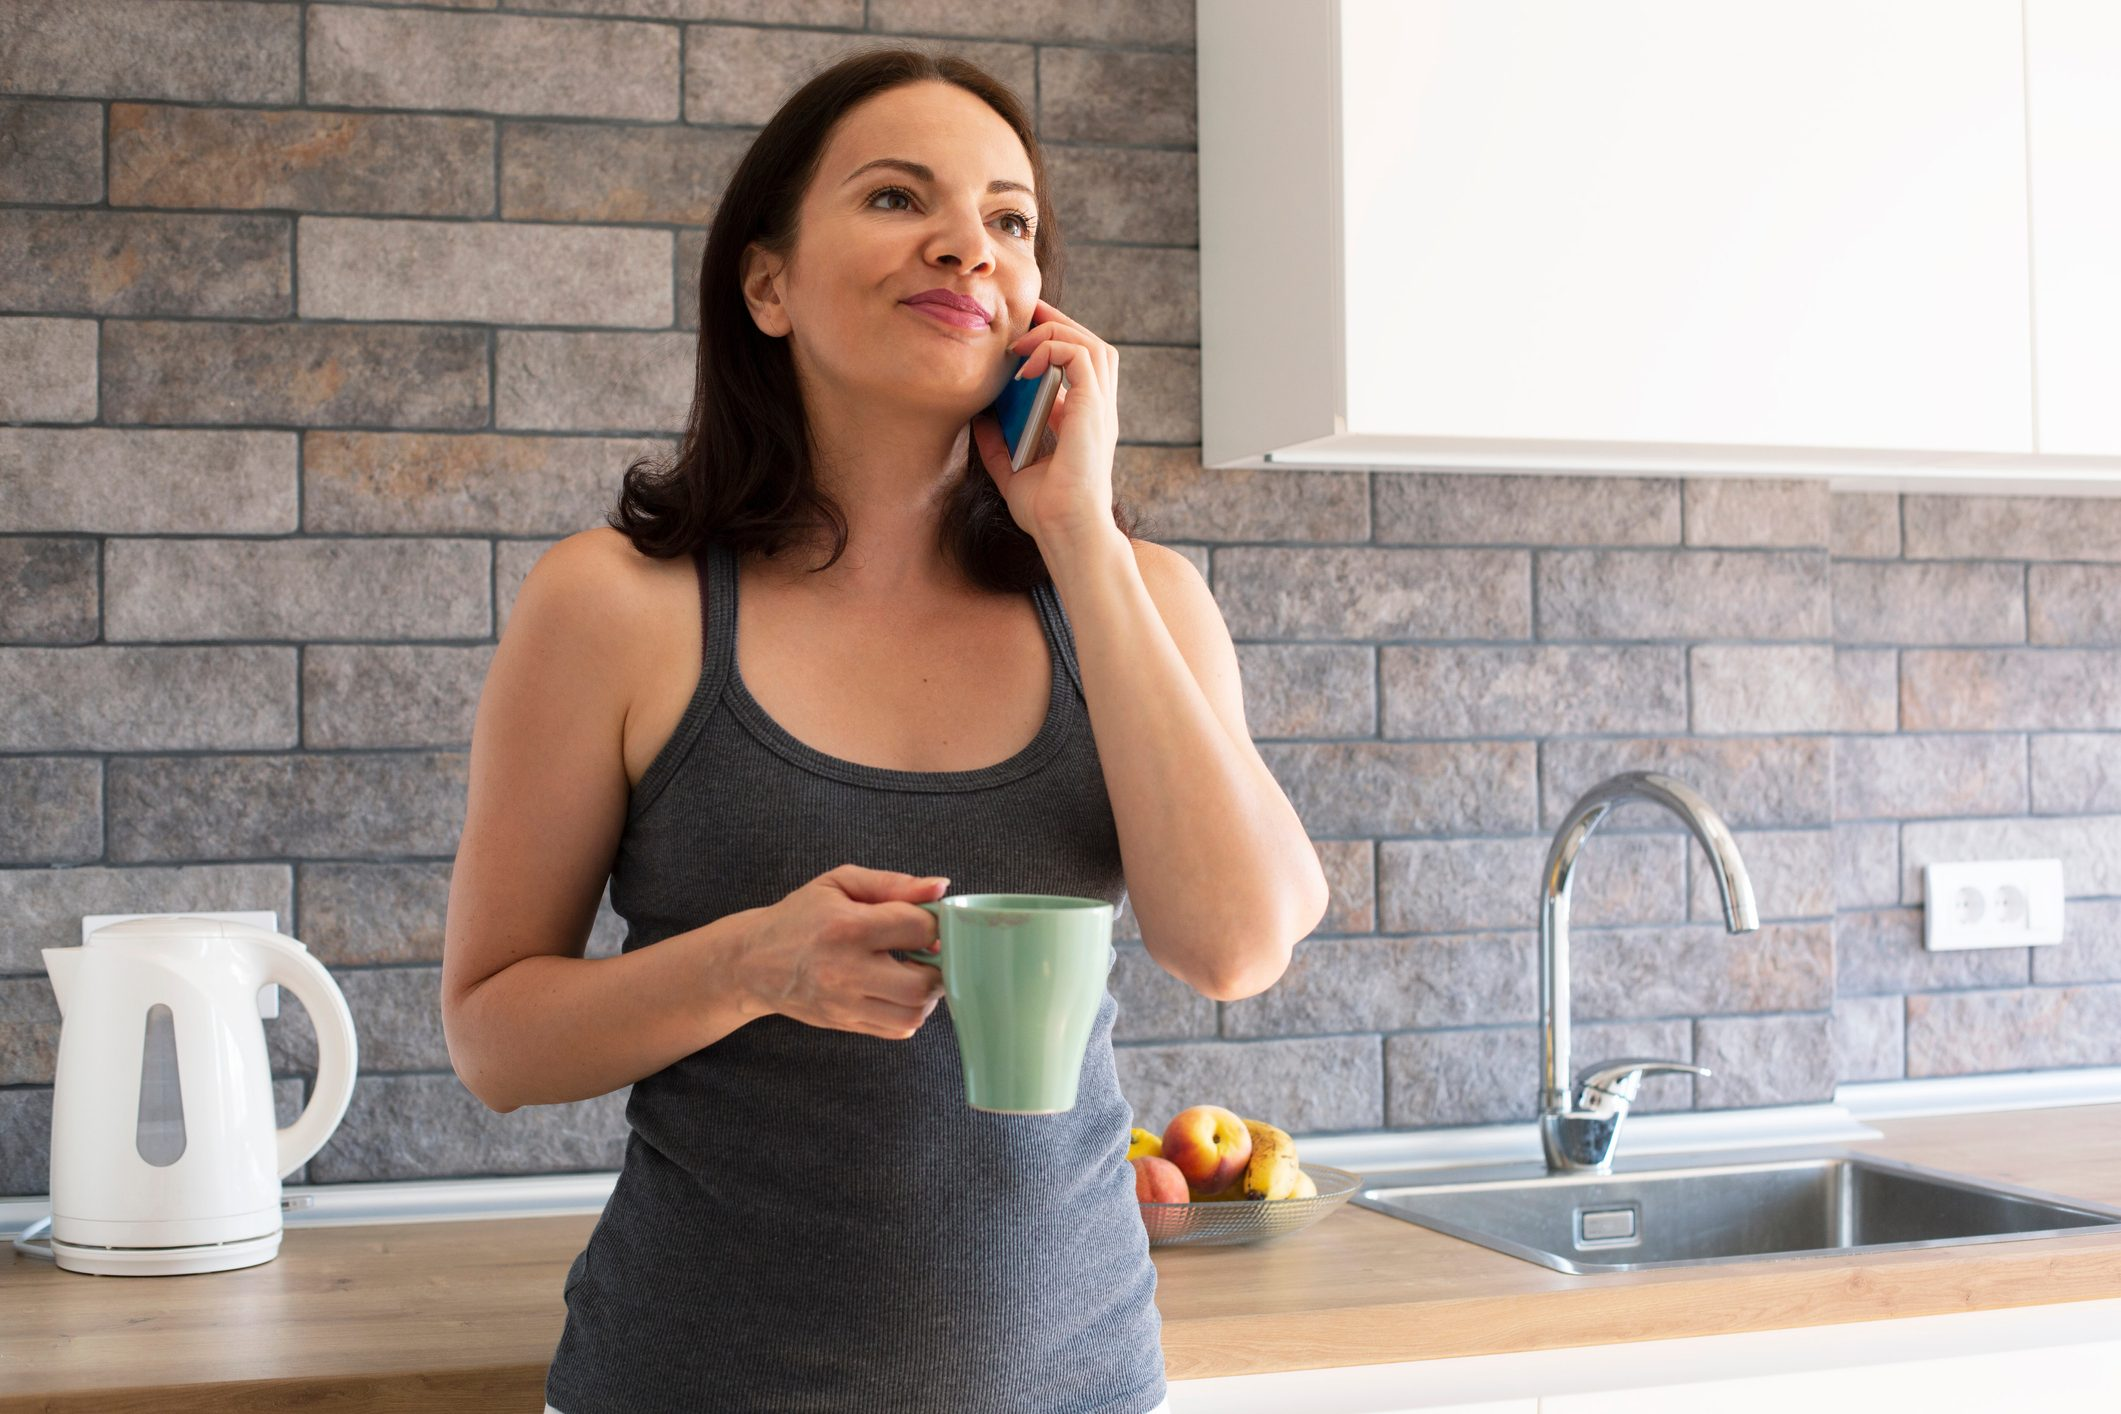 woman talking on the phone in kitchen